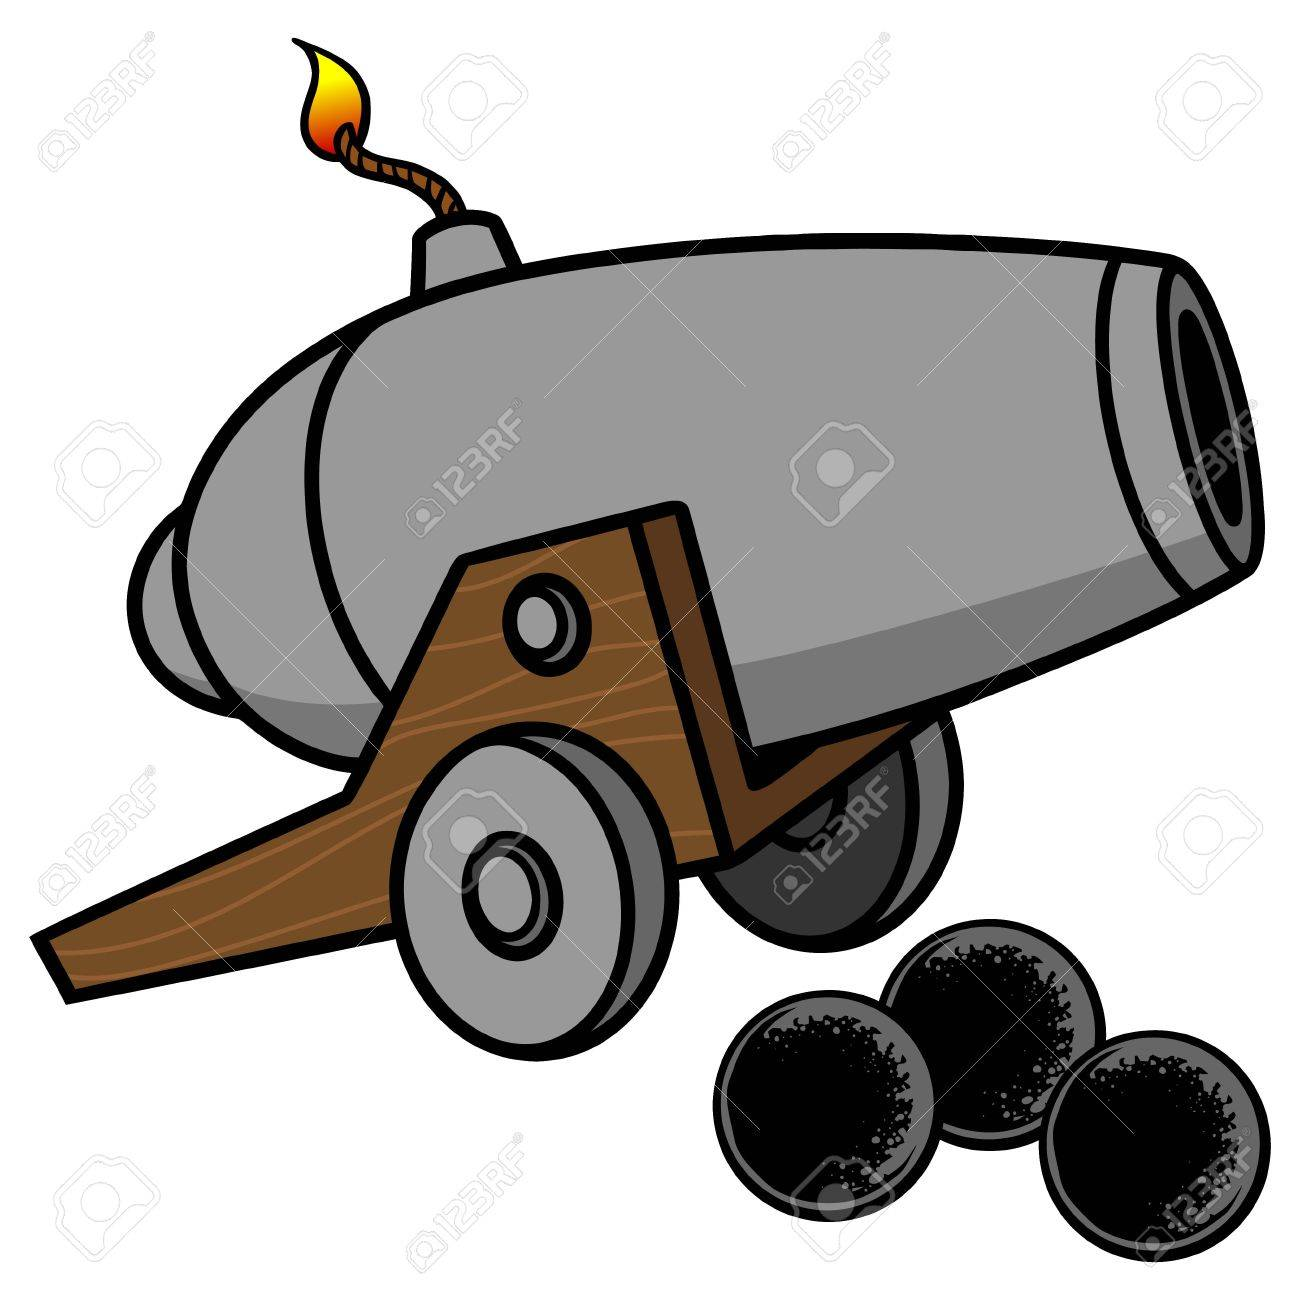 Clipart cannons 5 » Clipart Station.